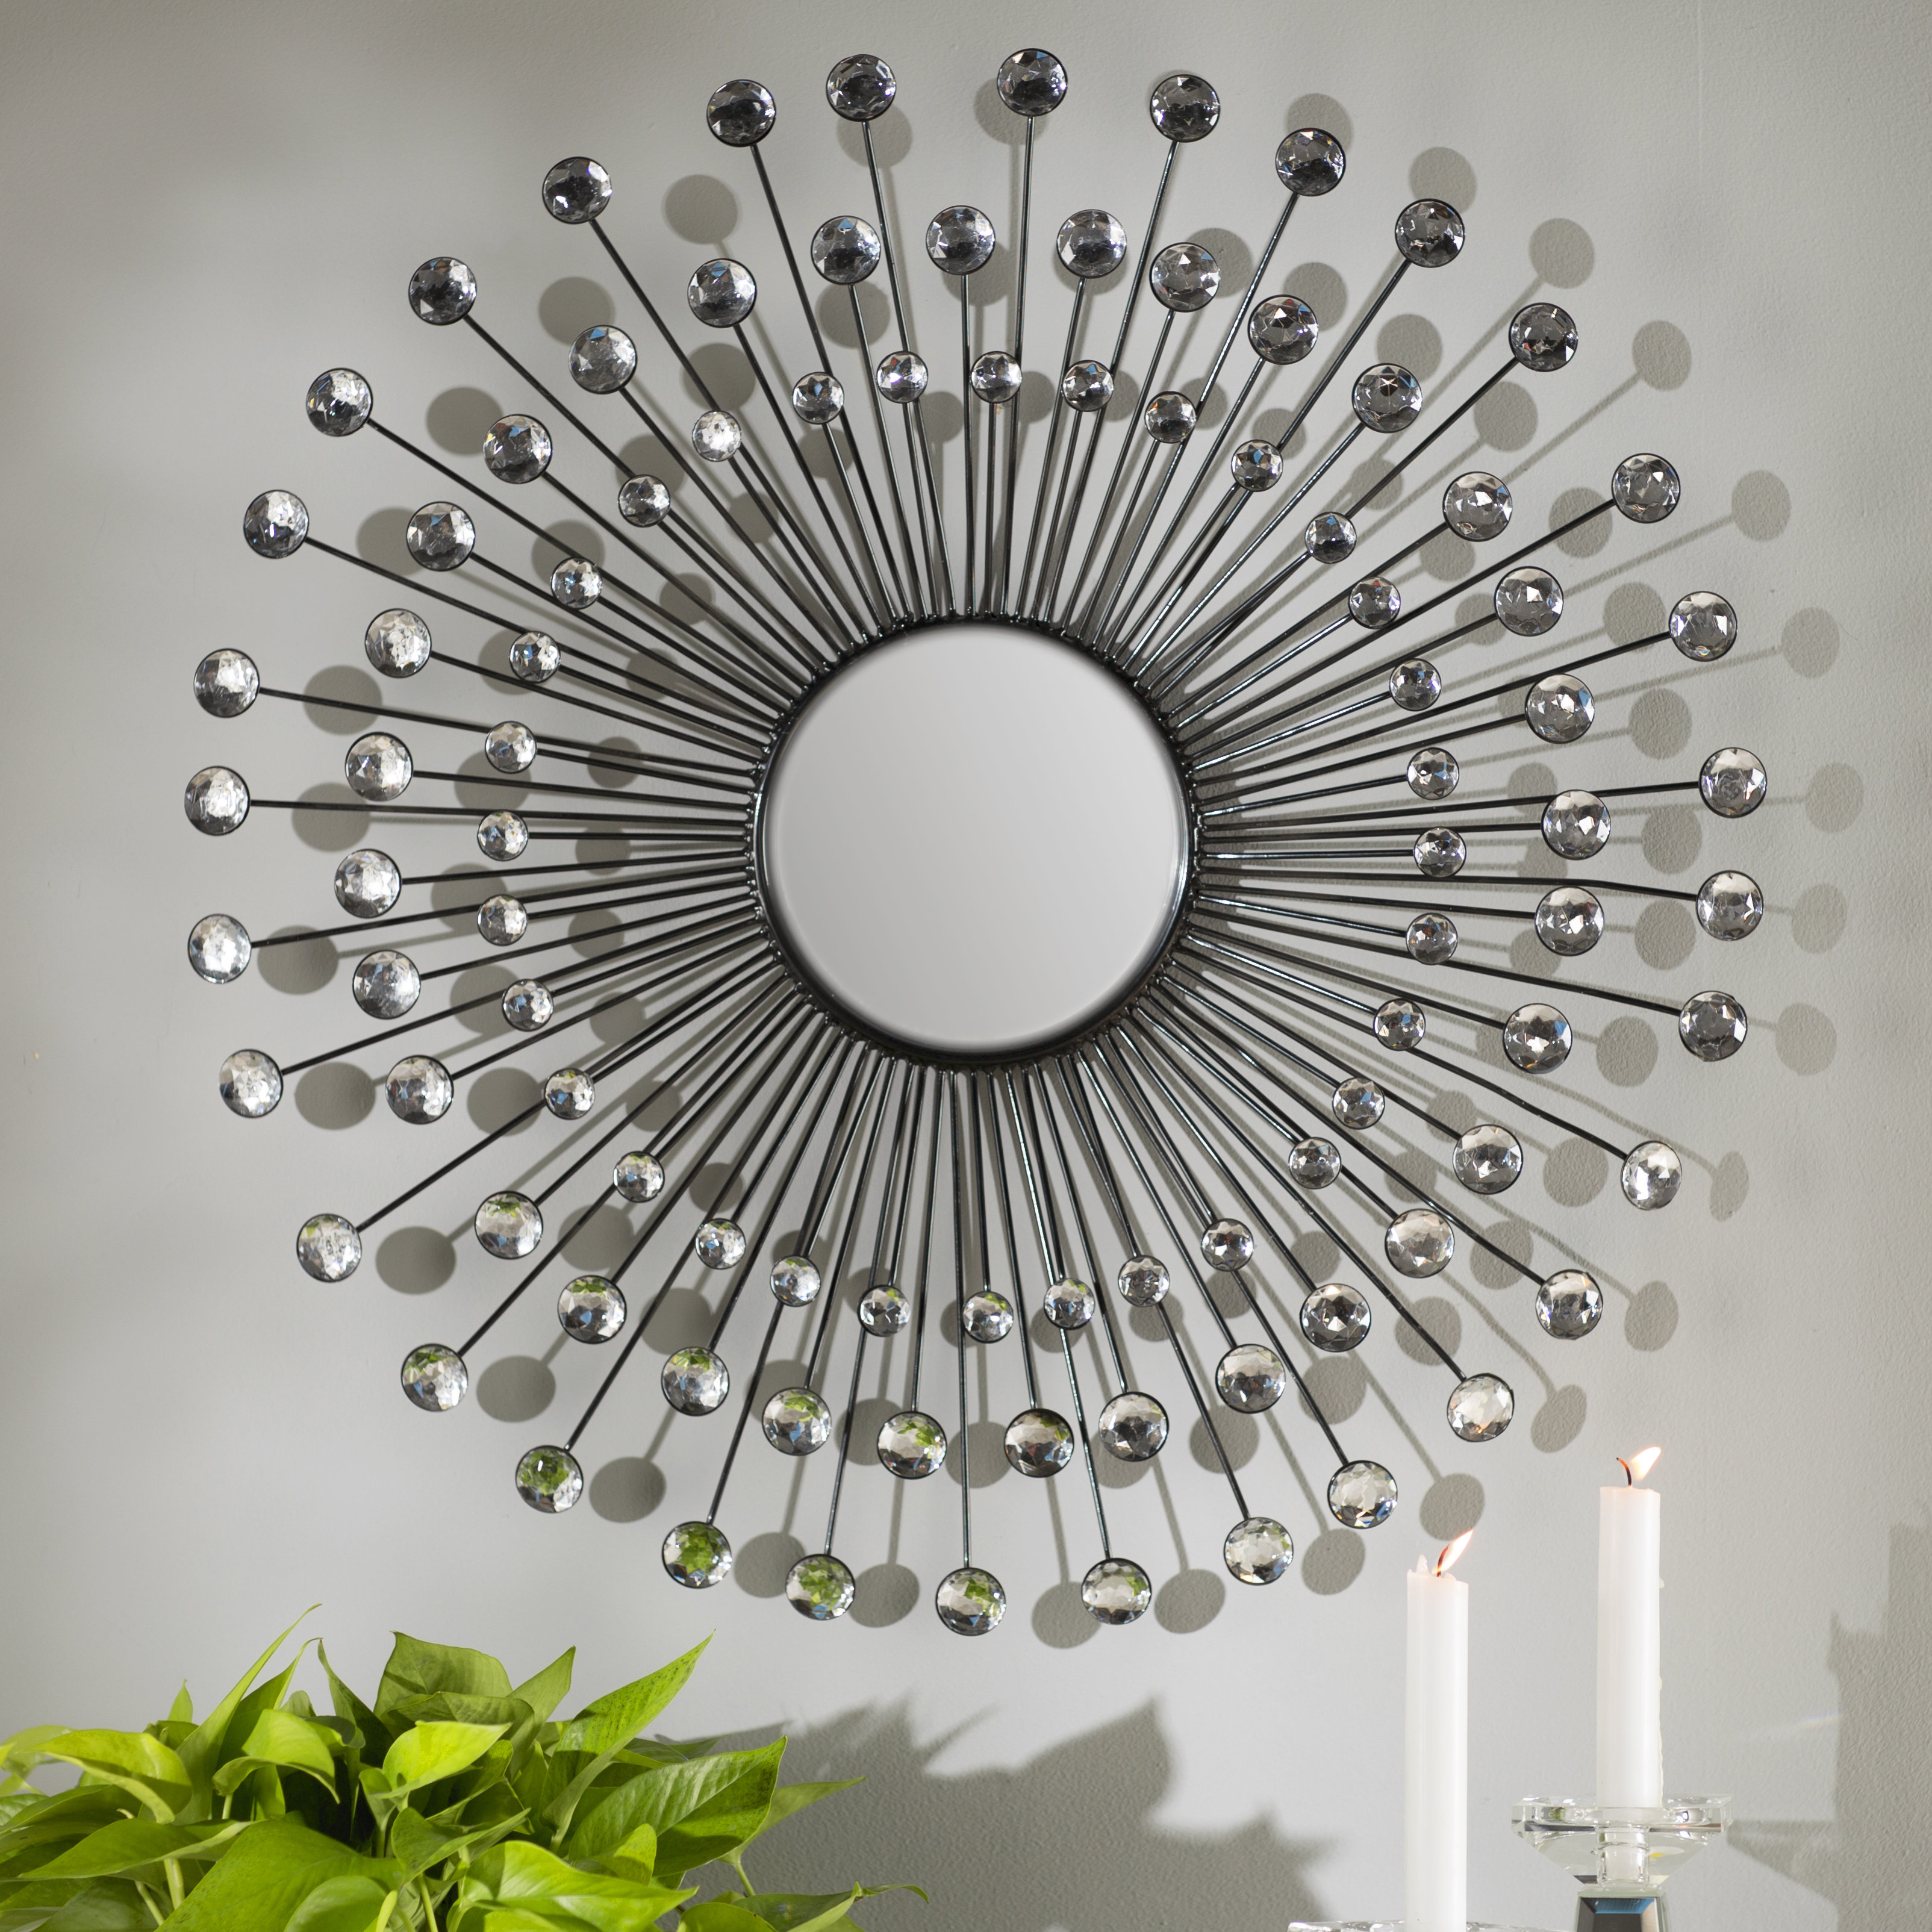 Starburst Wall Decor By Willa Arlo Interiors Intended For Most Recently Released Willa Arlo Interiors Estrela Modern Sunburst Metal Wall Mirror (Gallery 2 of 20)